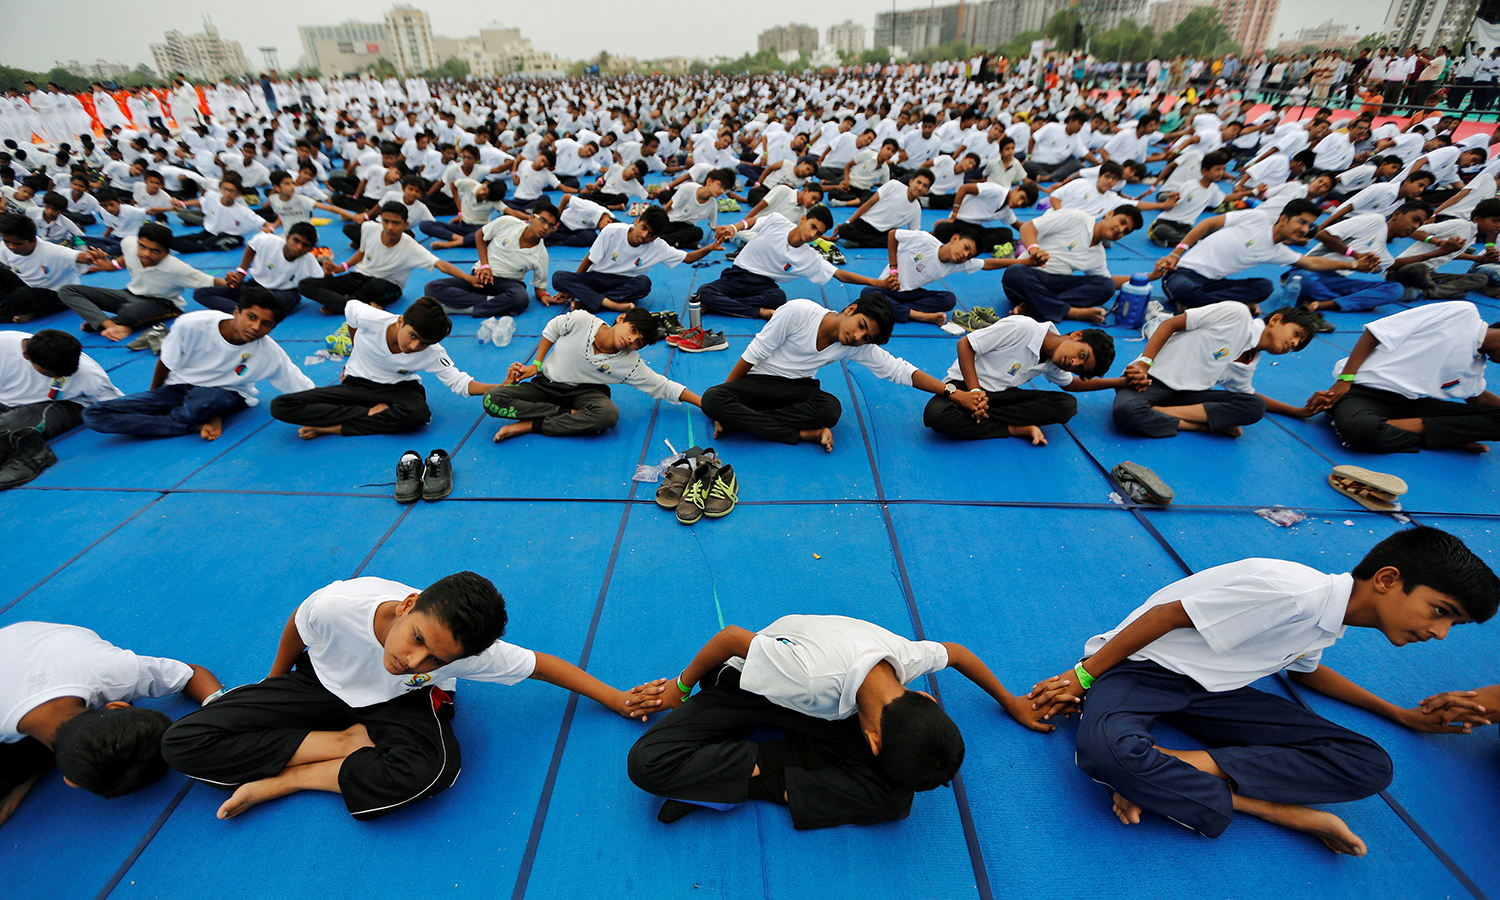 Participants perform yoga during World Yoga Day in Ahmedabad, India. Reuters